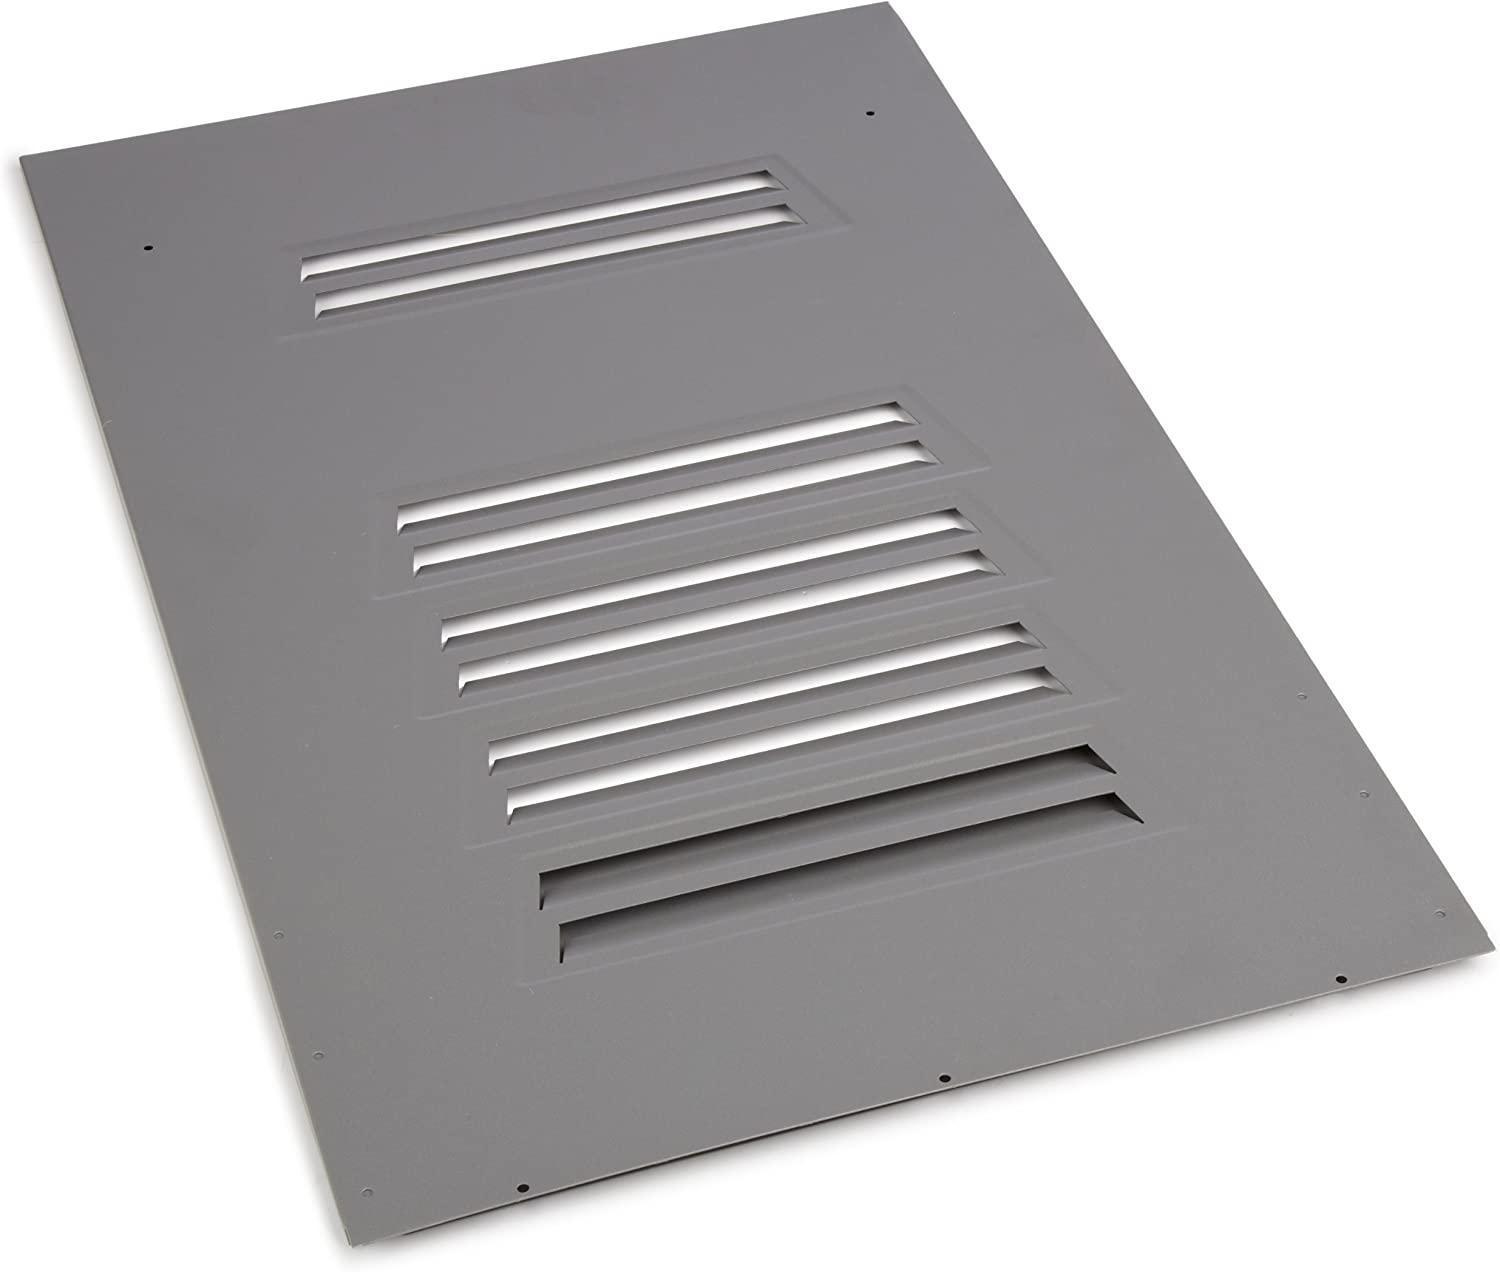 Zodiac R0482304 Rear Panel Lowest price challenge Legac Assembly Max 50% OFF Replacement for